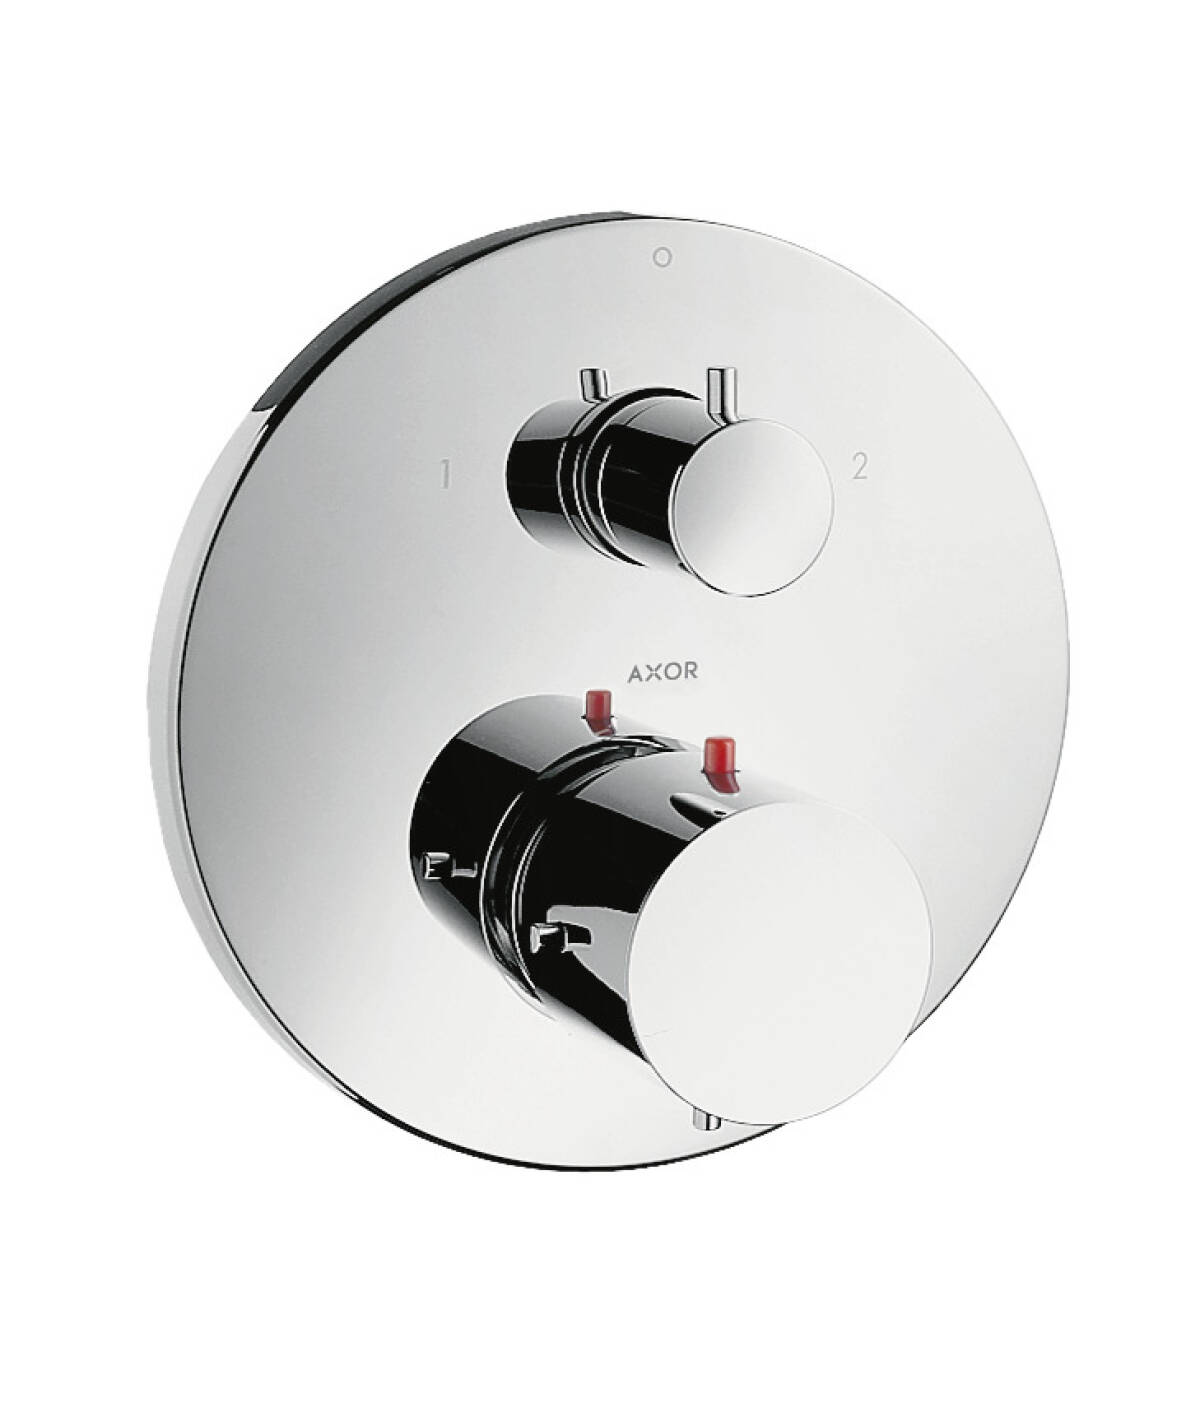 Thermostatic mixer for concealed installation with shut-off/ diverter valve, Chrome, 10720000